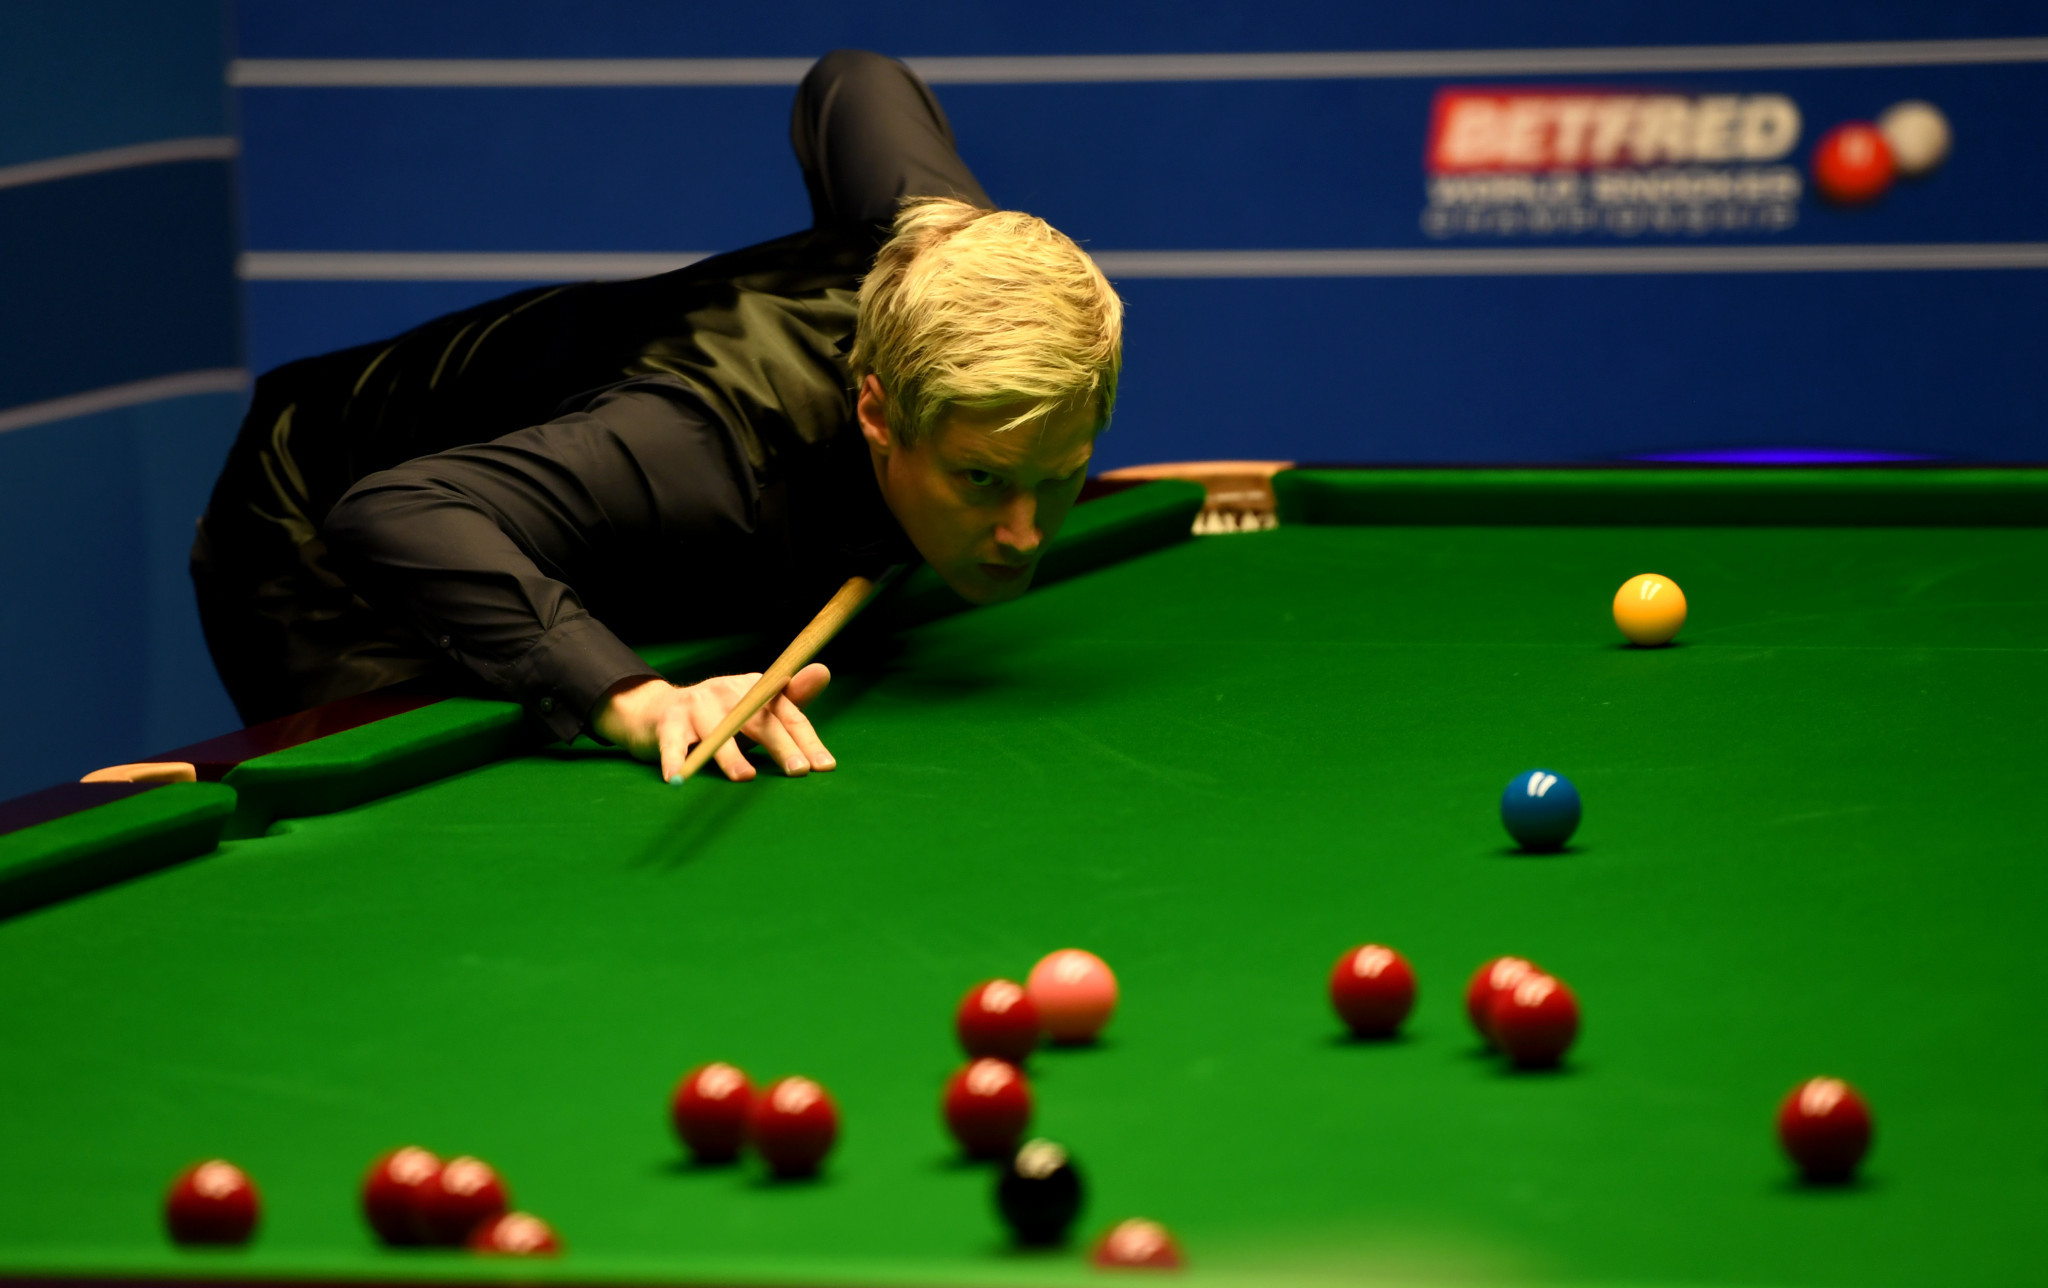 Australia's Neil Robertson, the second seed, reached the last eight of the World Snooker Championship after victory over Barry Hawkins ©Getty Images